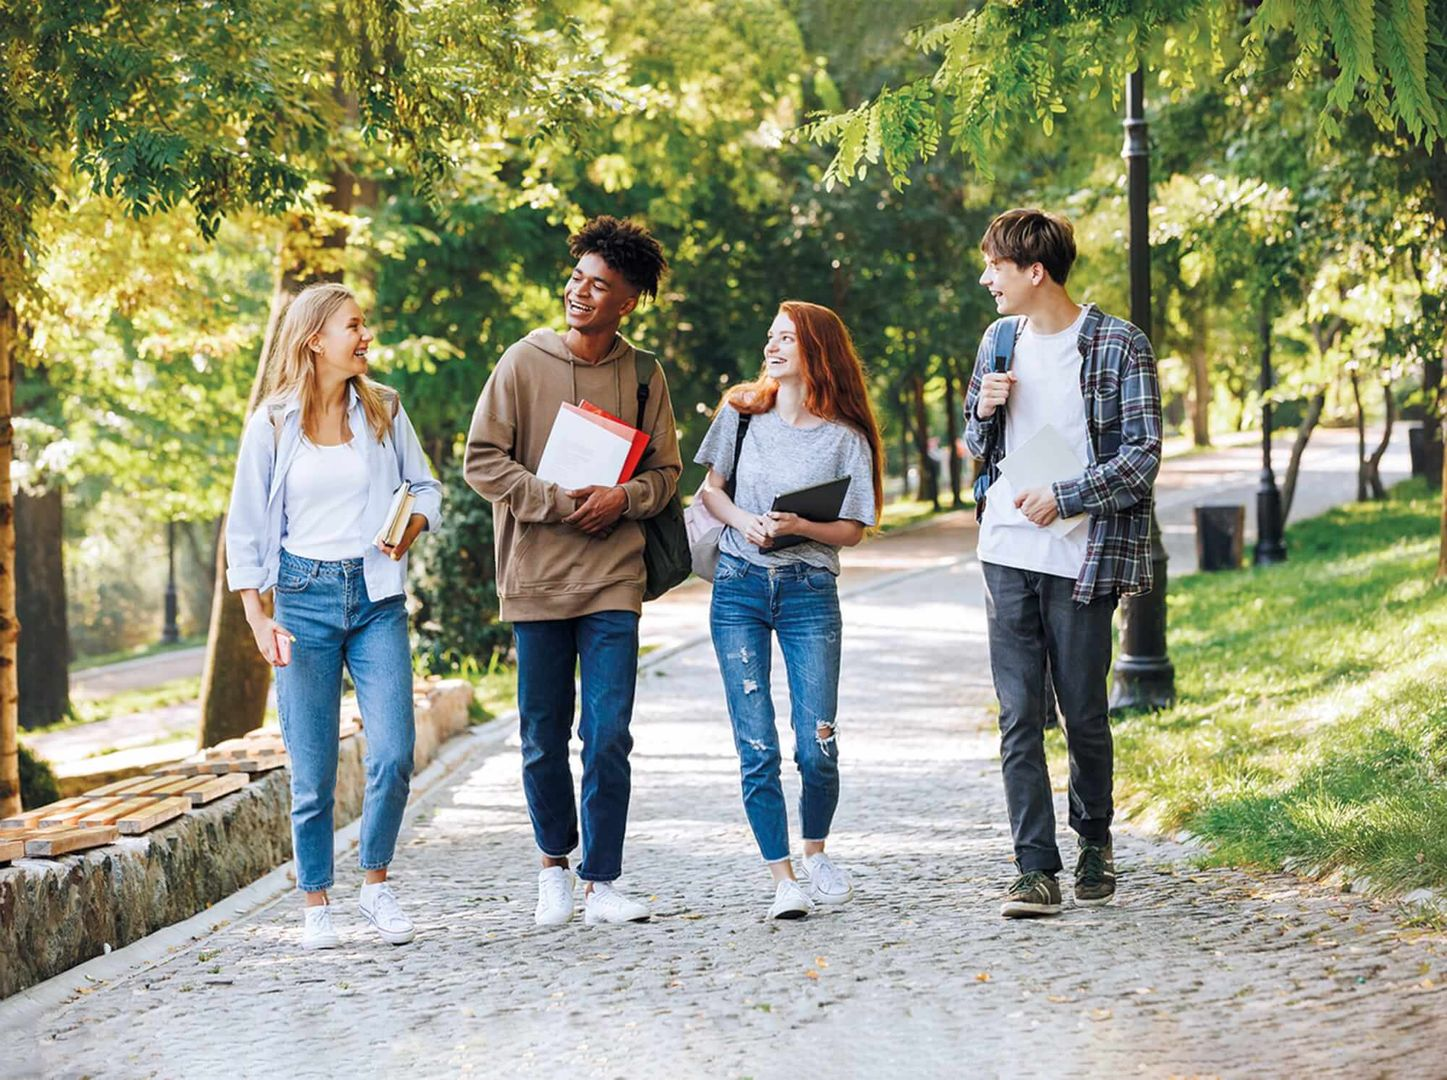 Group of students walking together down a street